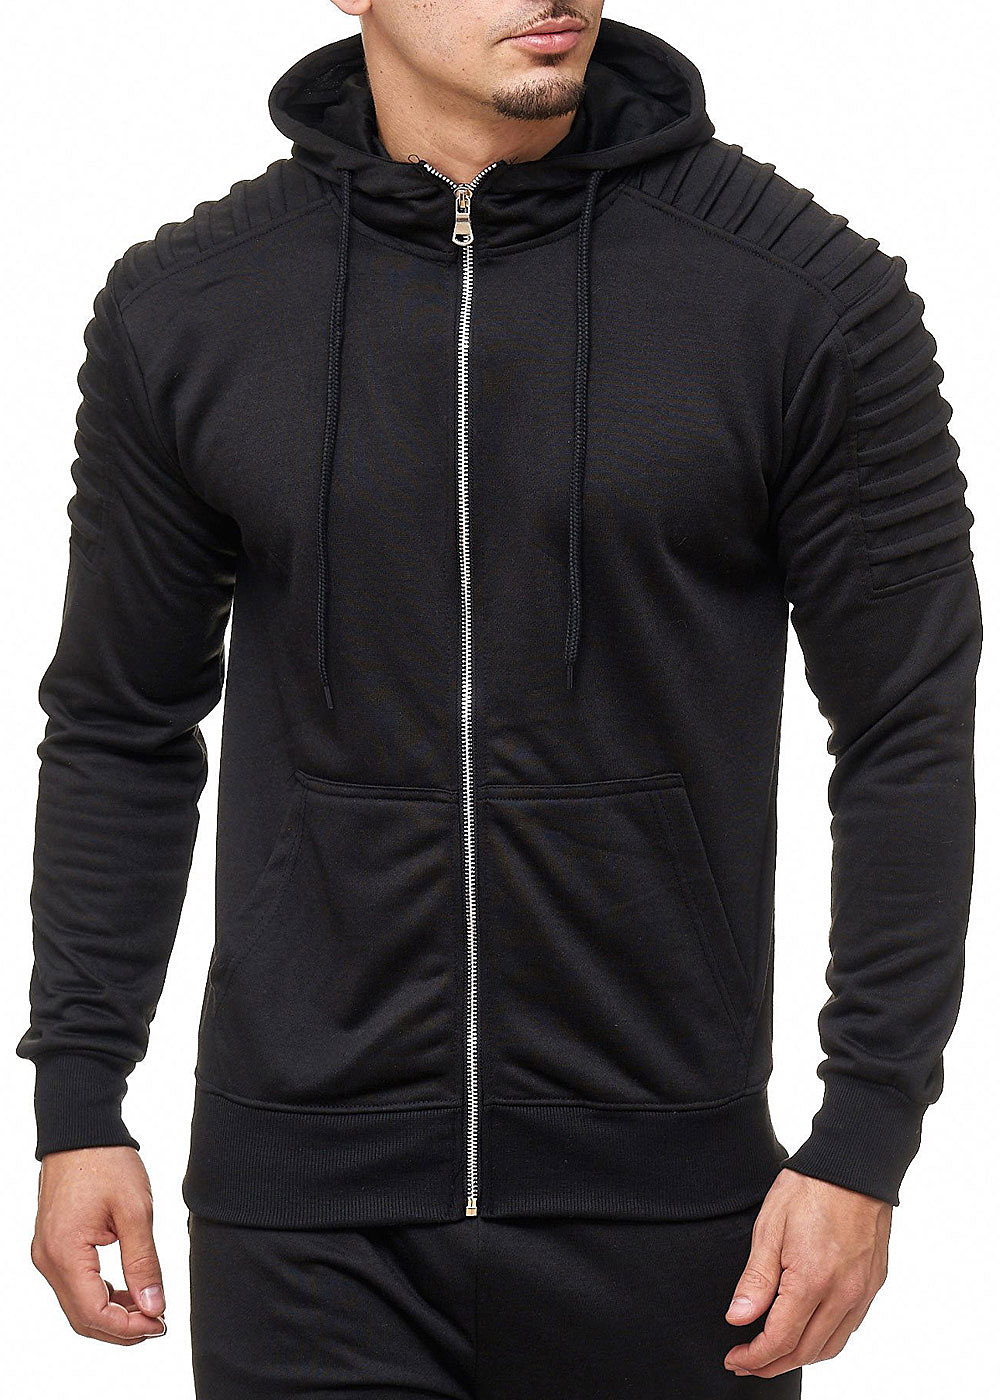 seventyseven lifestyle herren zip hoodie 2 taschen schwarz 77onlineshop. Black Bedroom Furniture Sets. Home Design Ideas